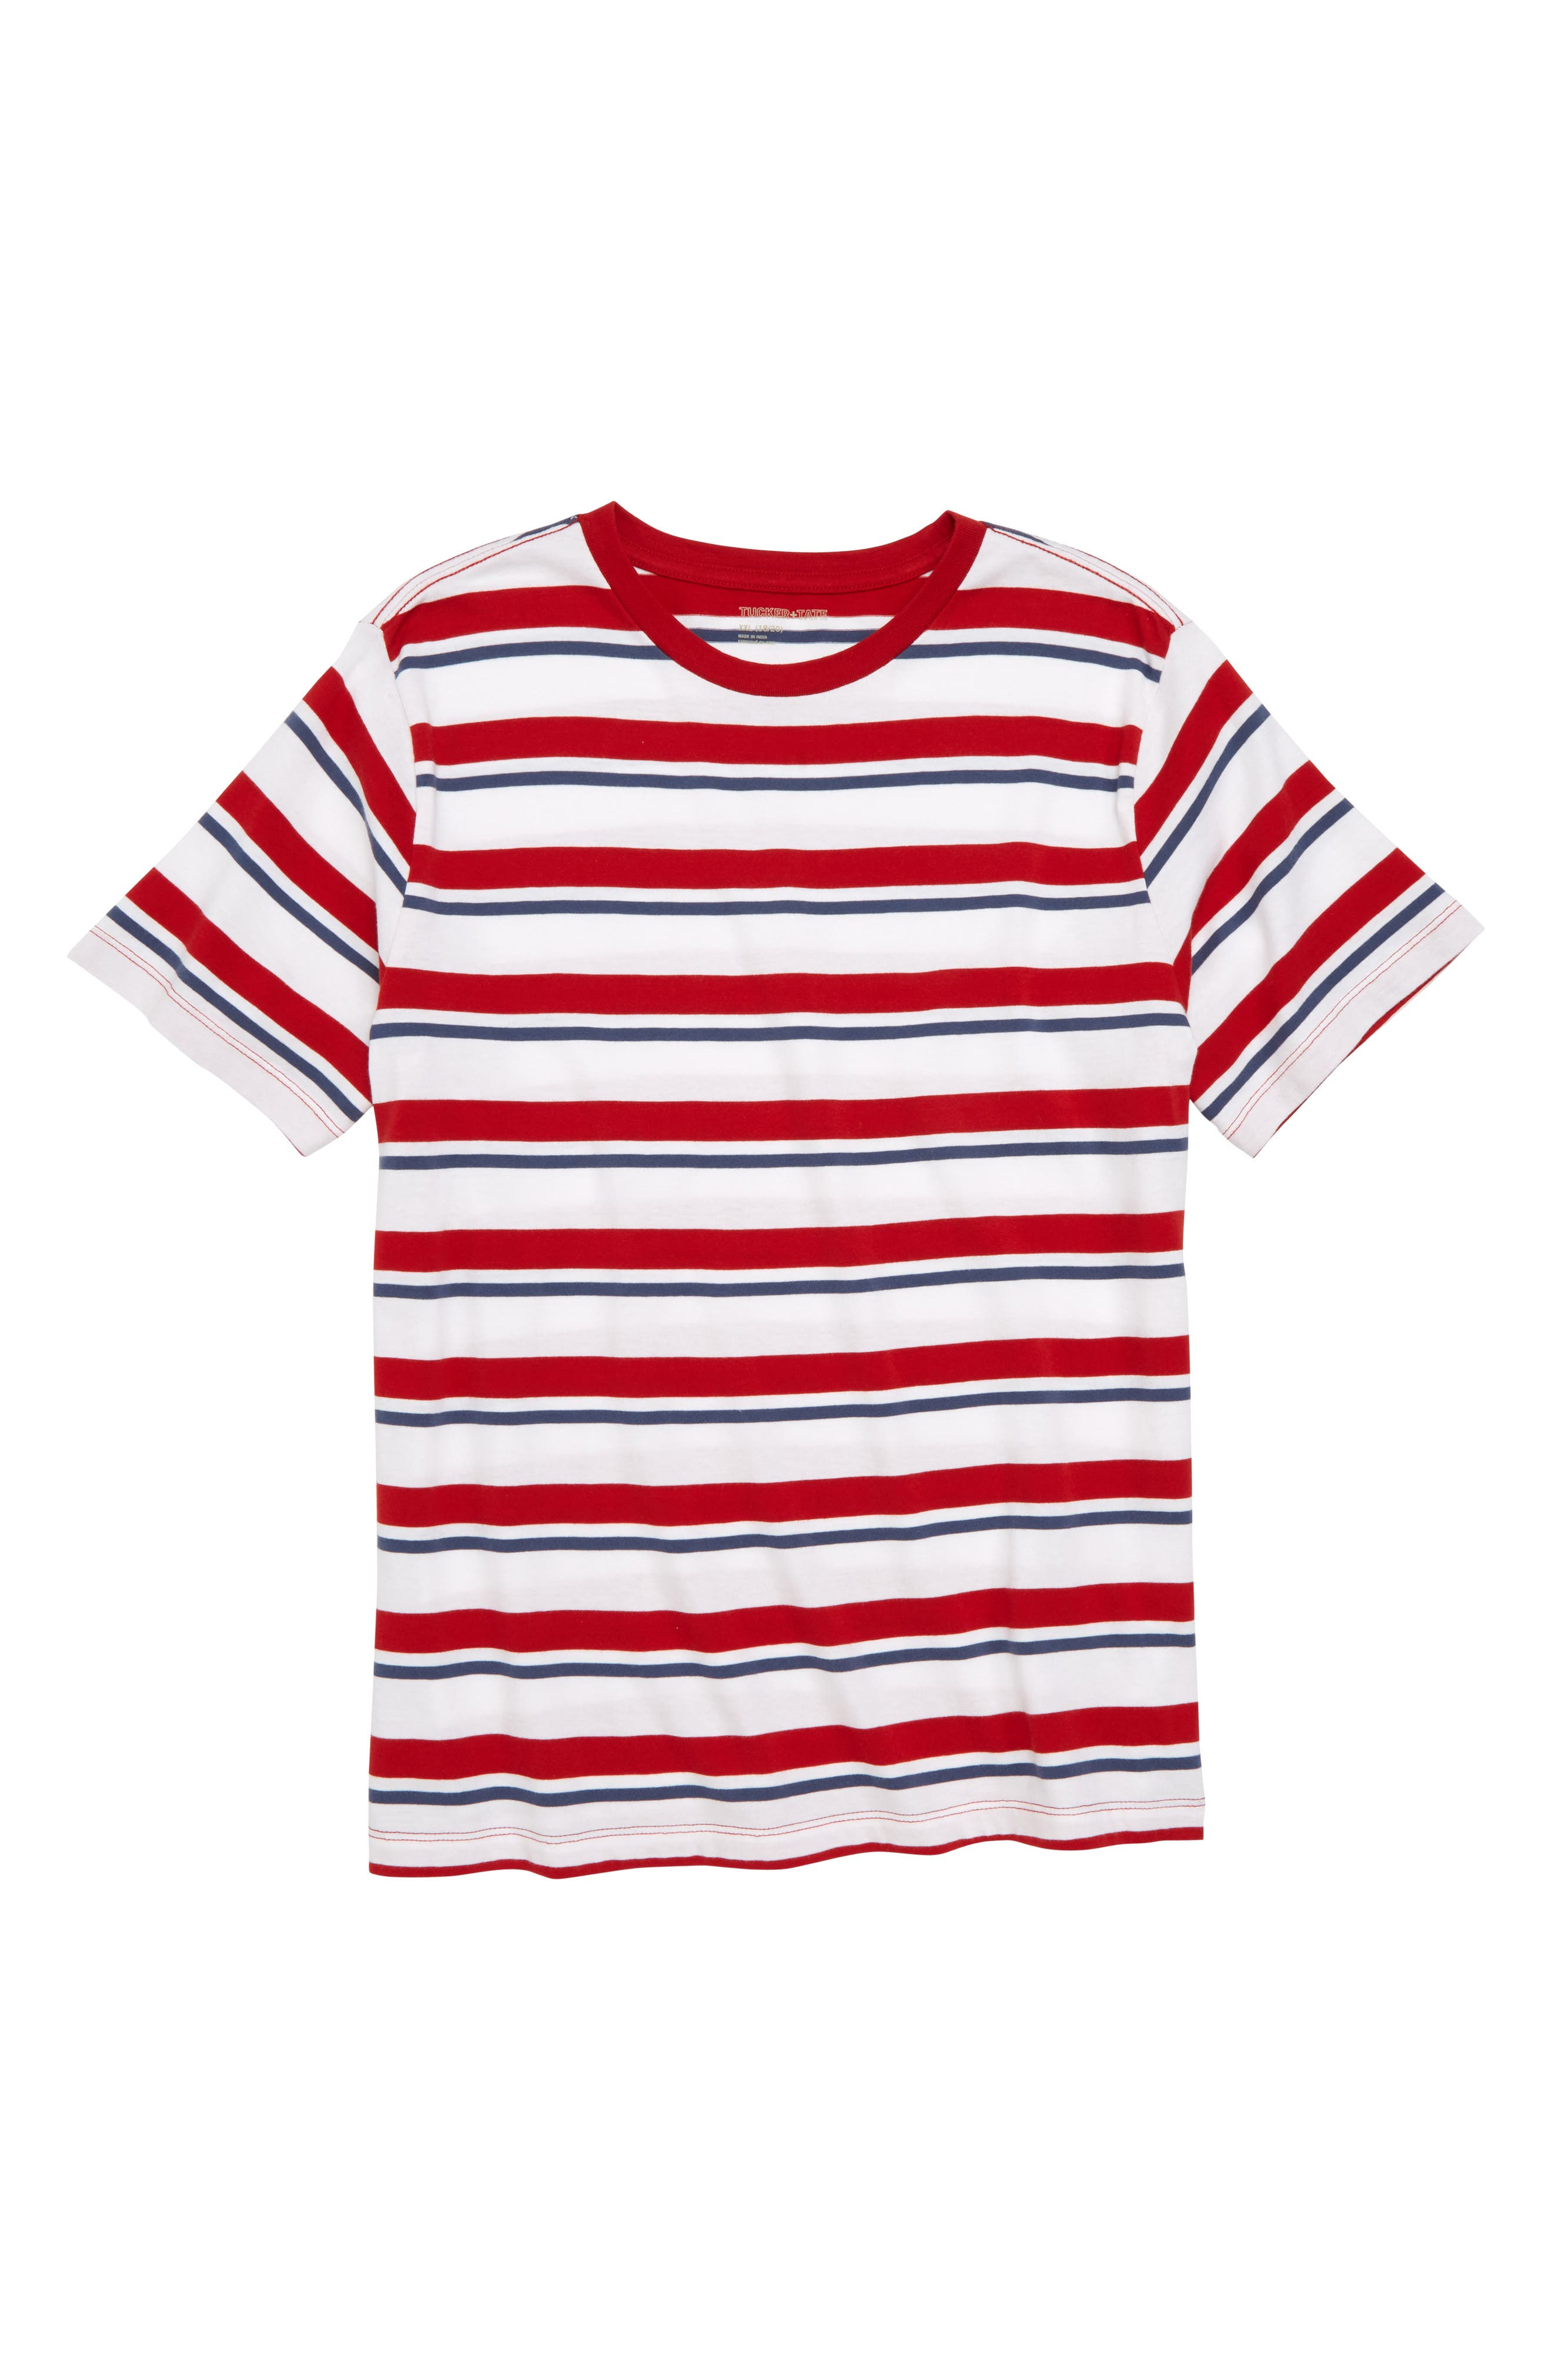 Repp Stripe T-Shirt,                         Main,                         color, Red Samba- White Stripe